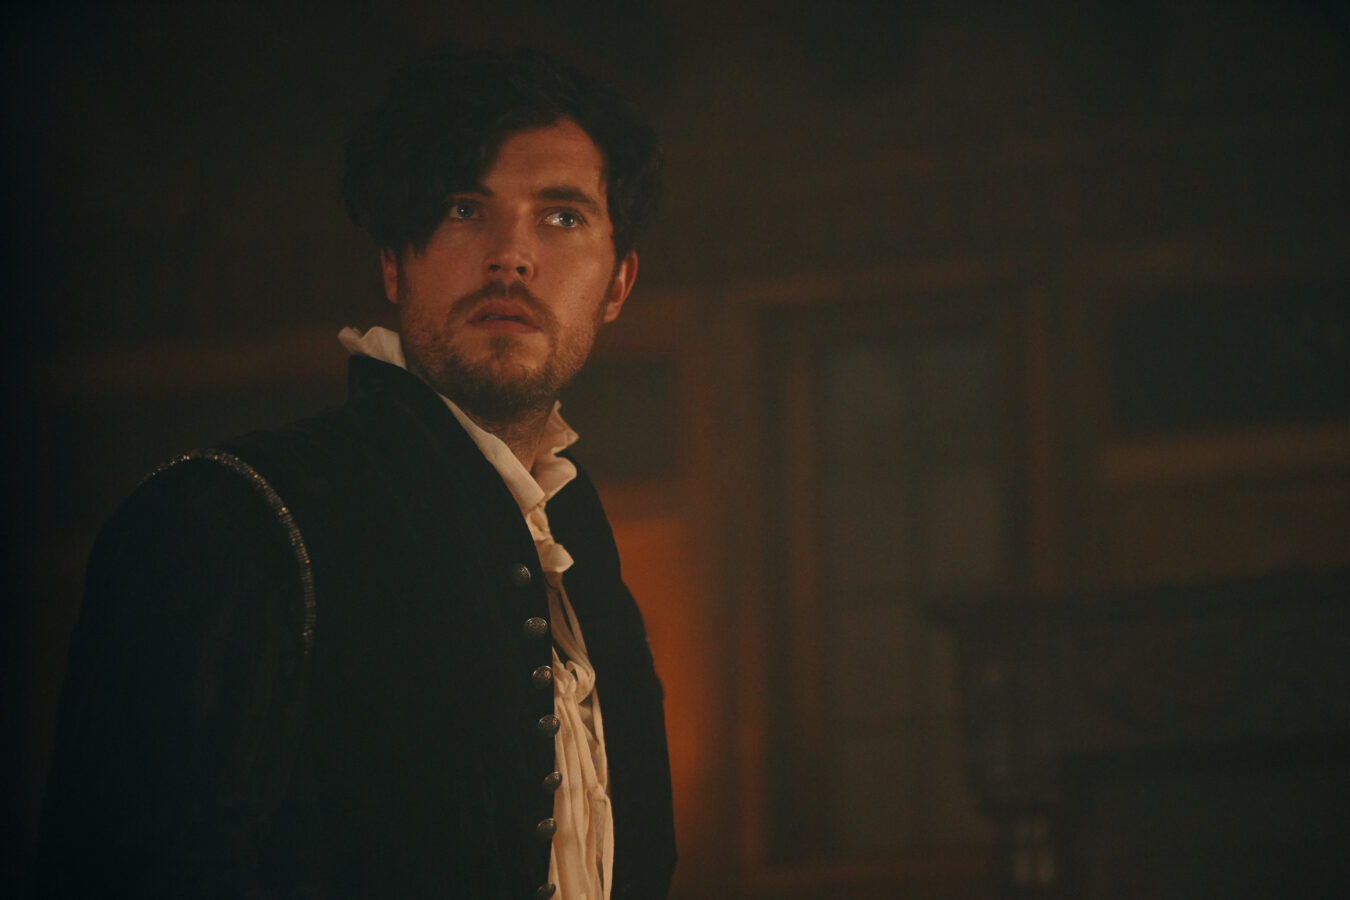 Tom Hughes as Kit Marlowe in A Discovery of Witches season 2 premiere